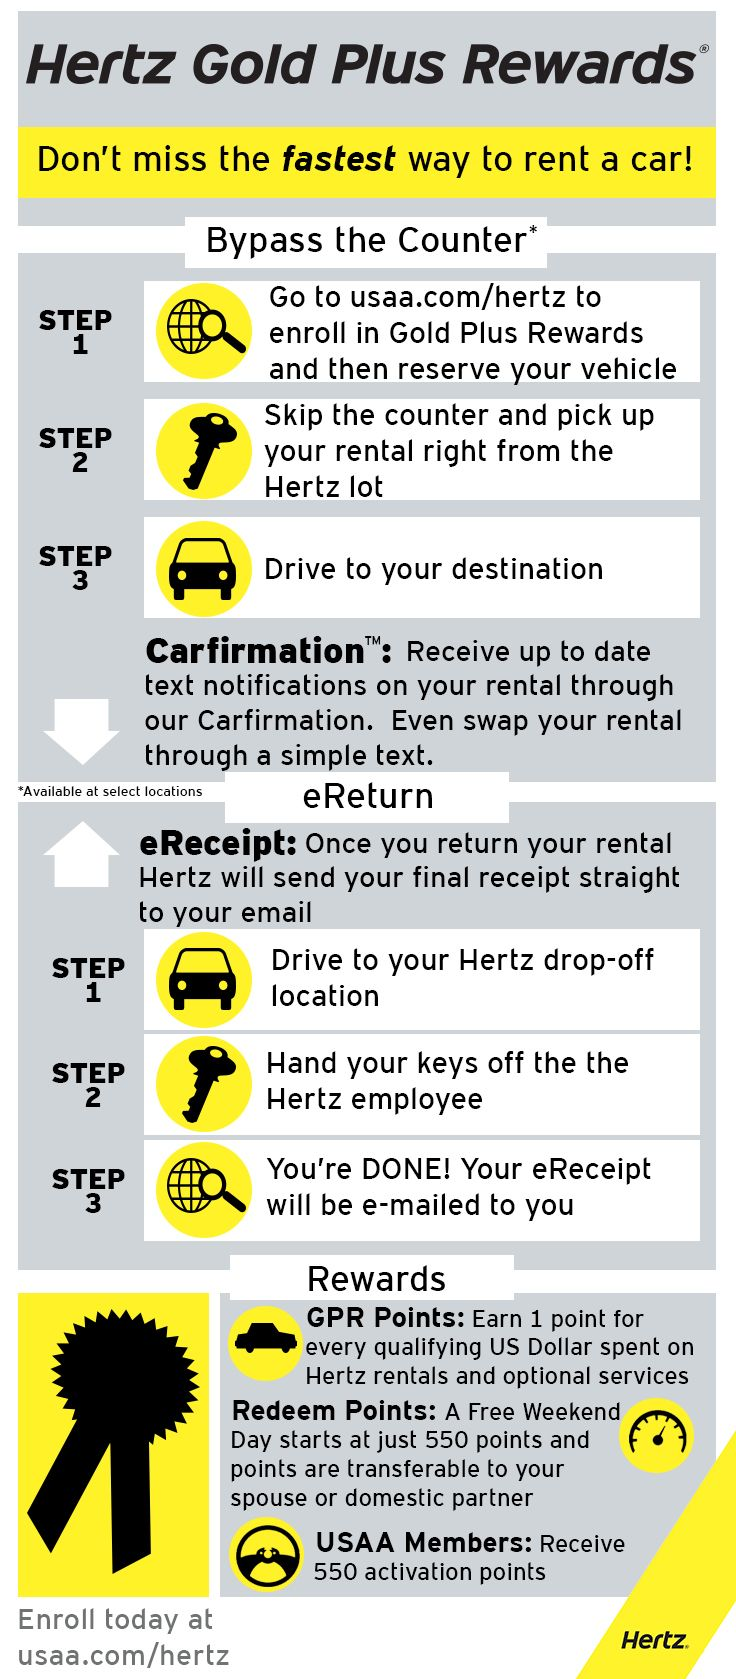 Usaa Members Receive Free Enrollment In The Hertz Gold Plus